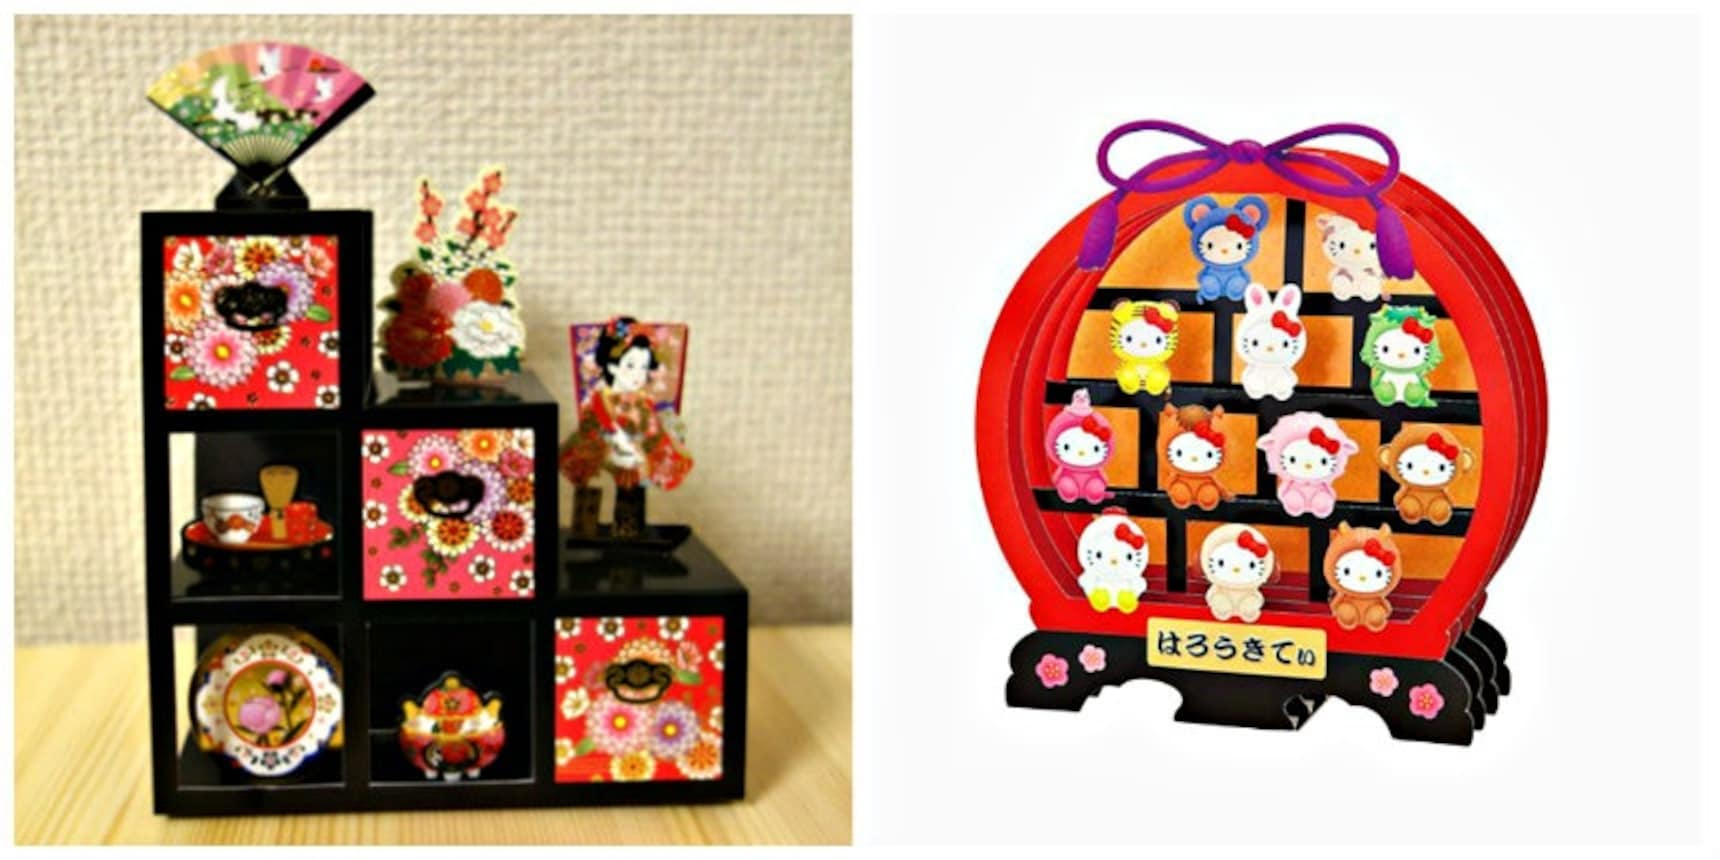 Sanrio Brings in the New Year with Hello Kitty